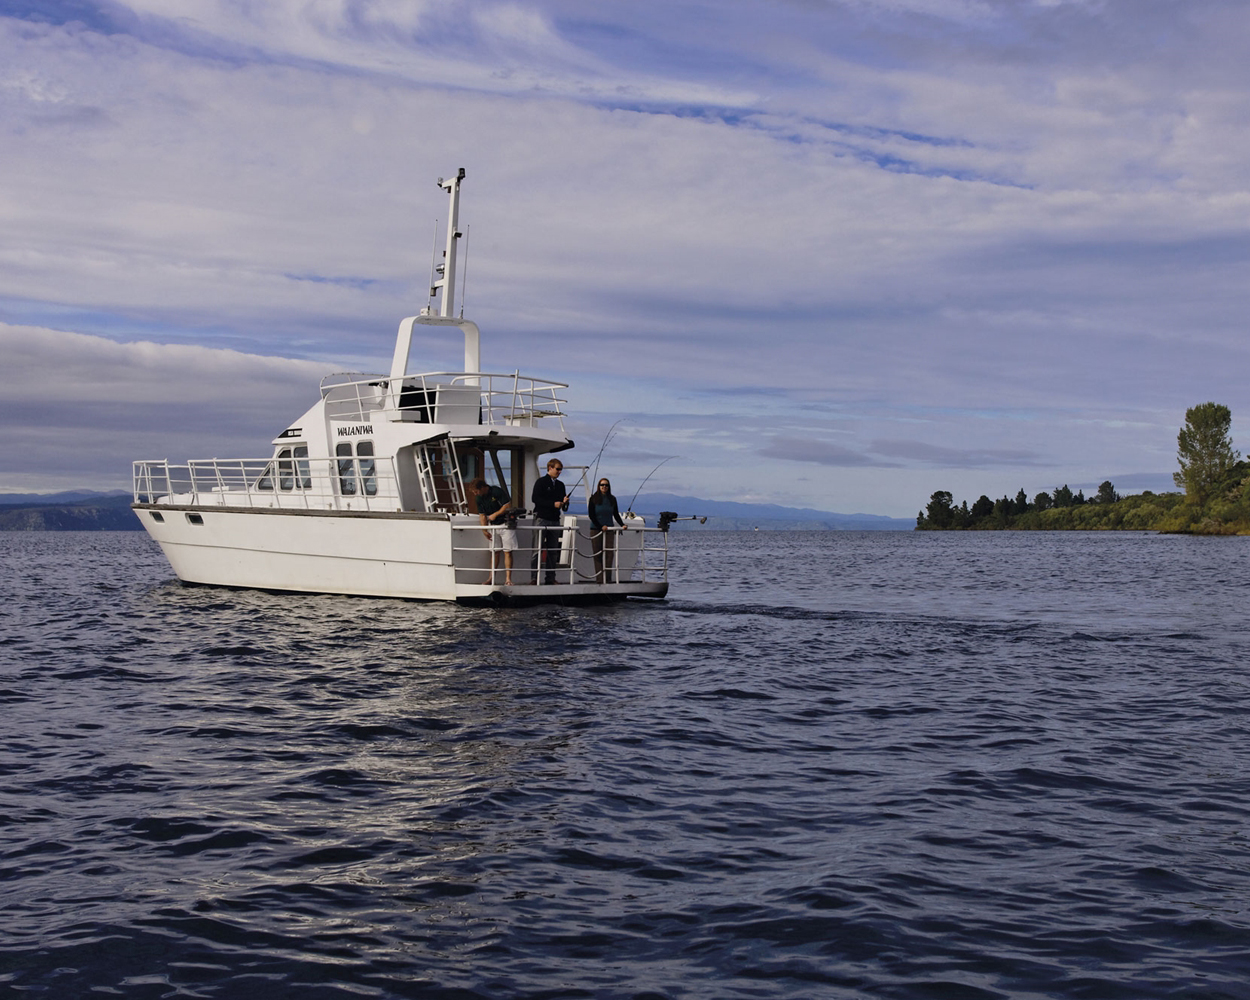 fishing on lake taupo - the kinloch club